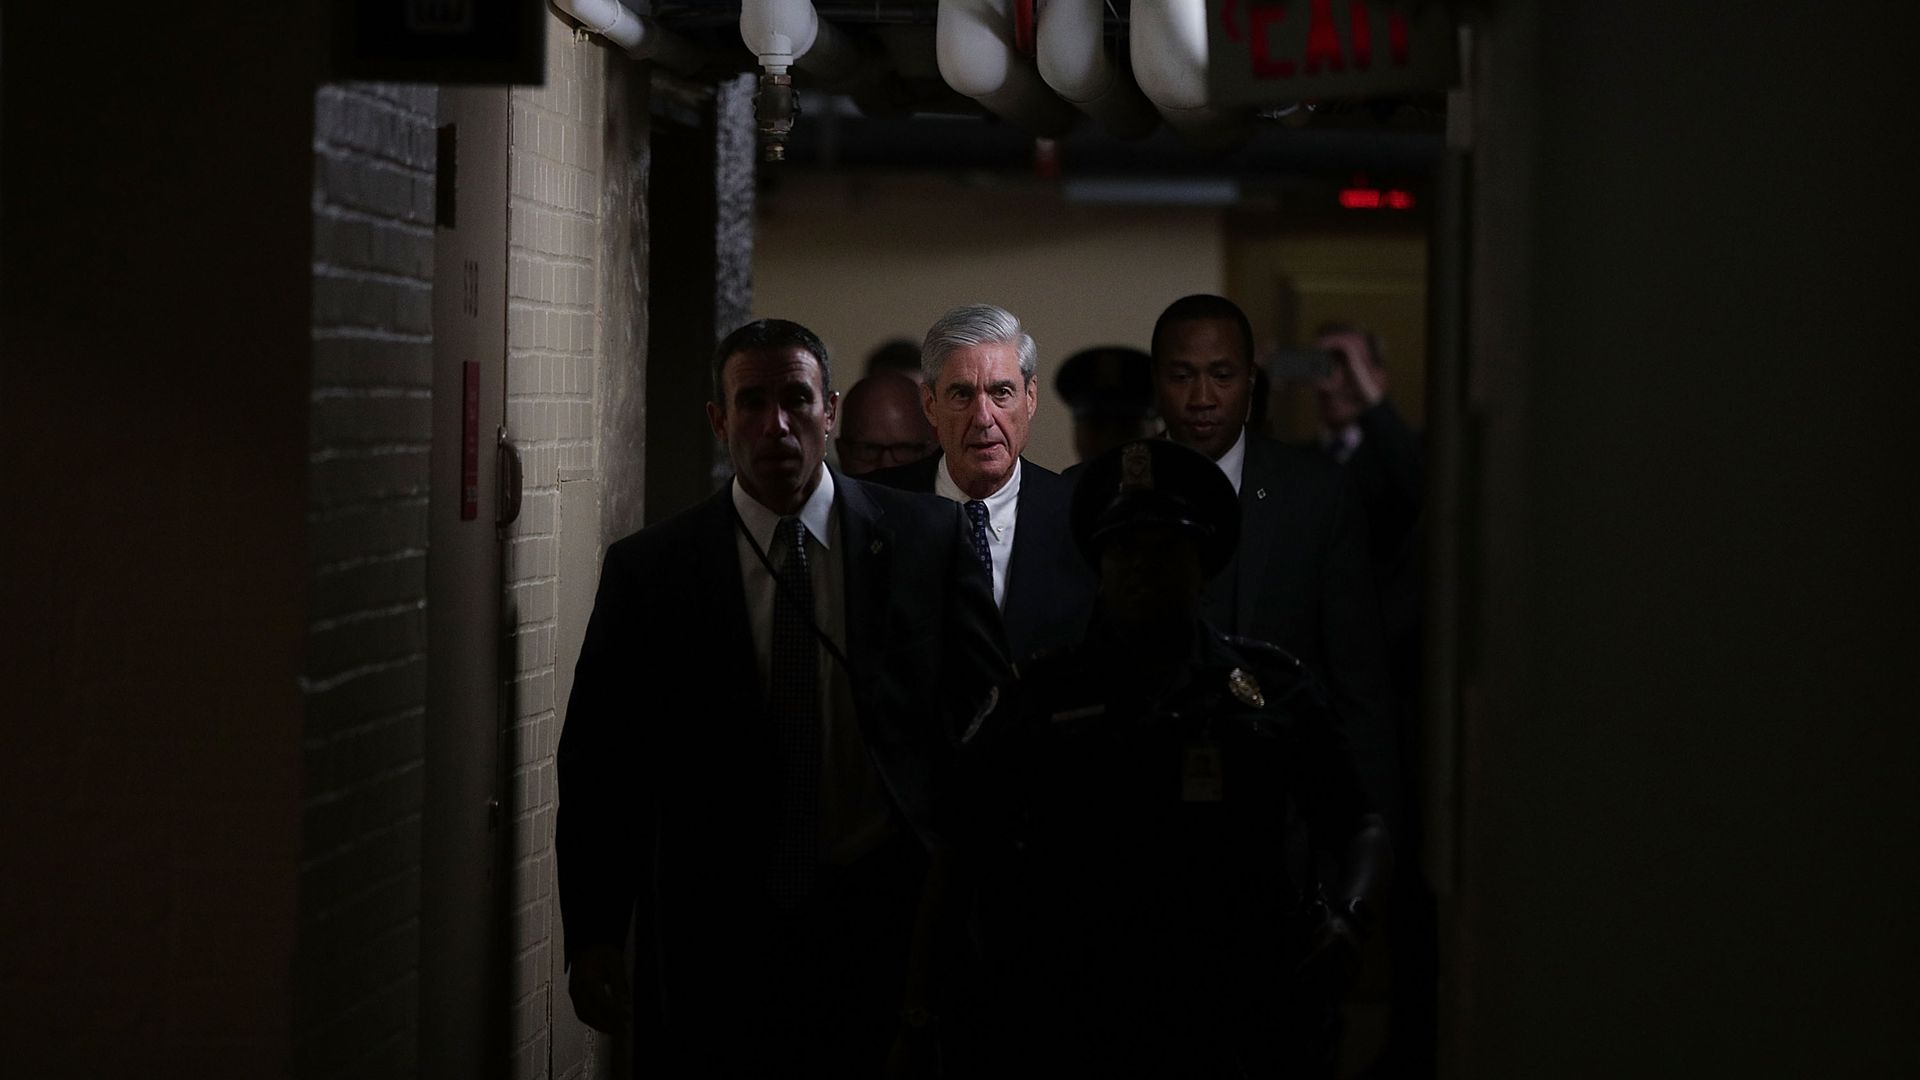 Robert Mueller is illuminated as he walks down a hallway at the Capital surrounded by security guards